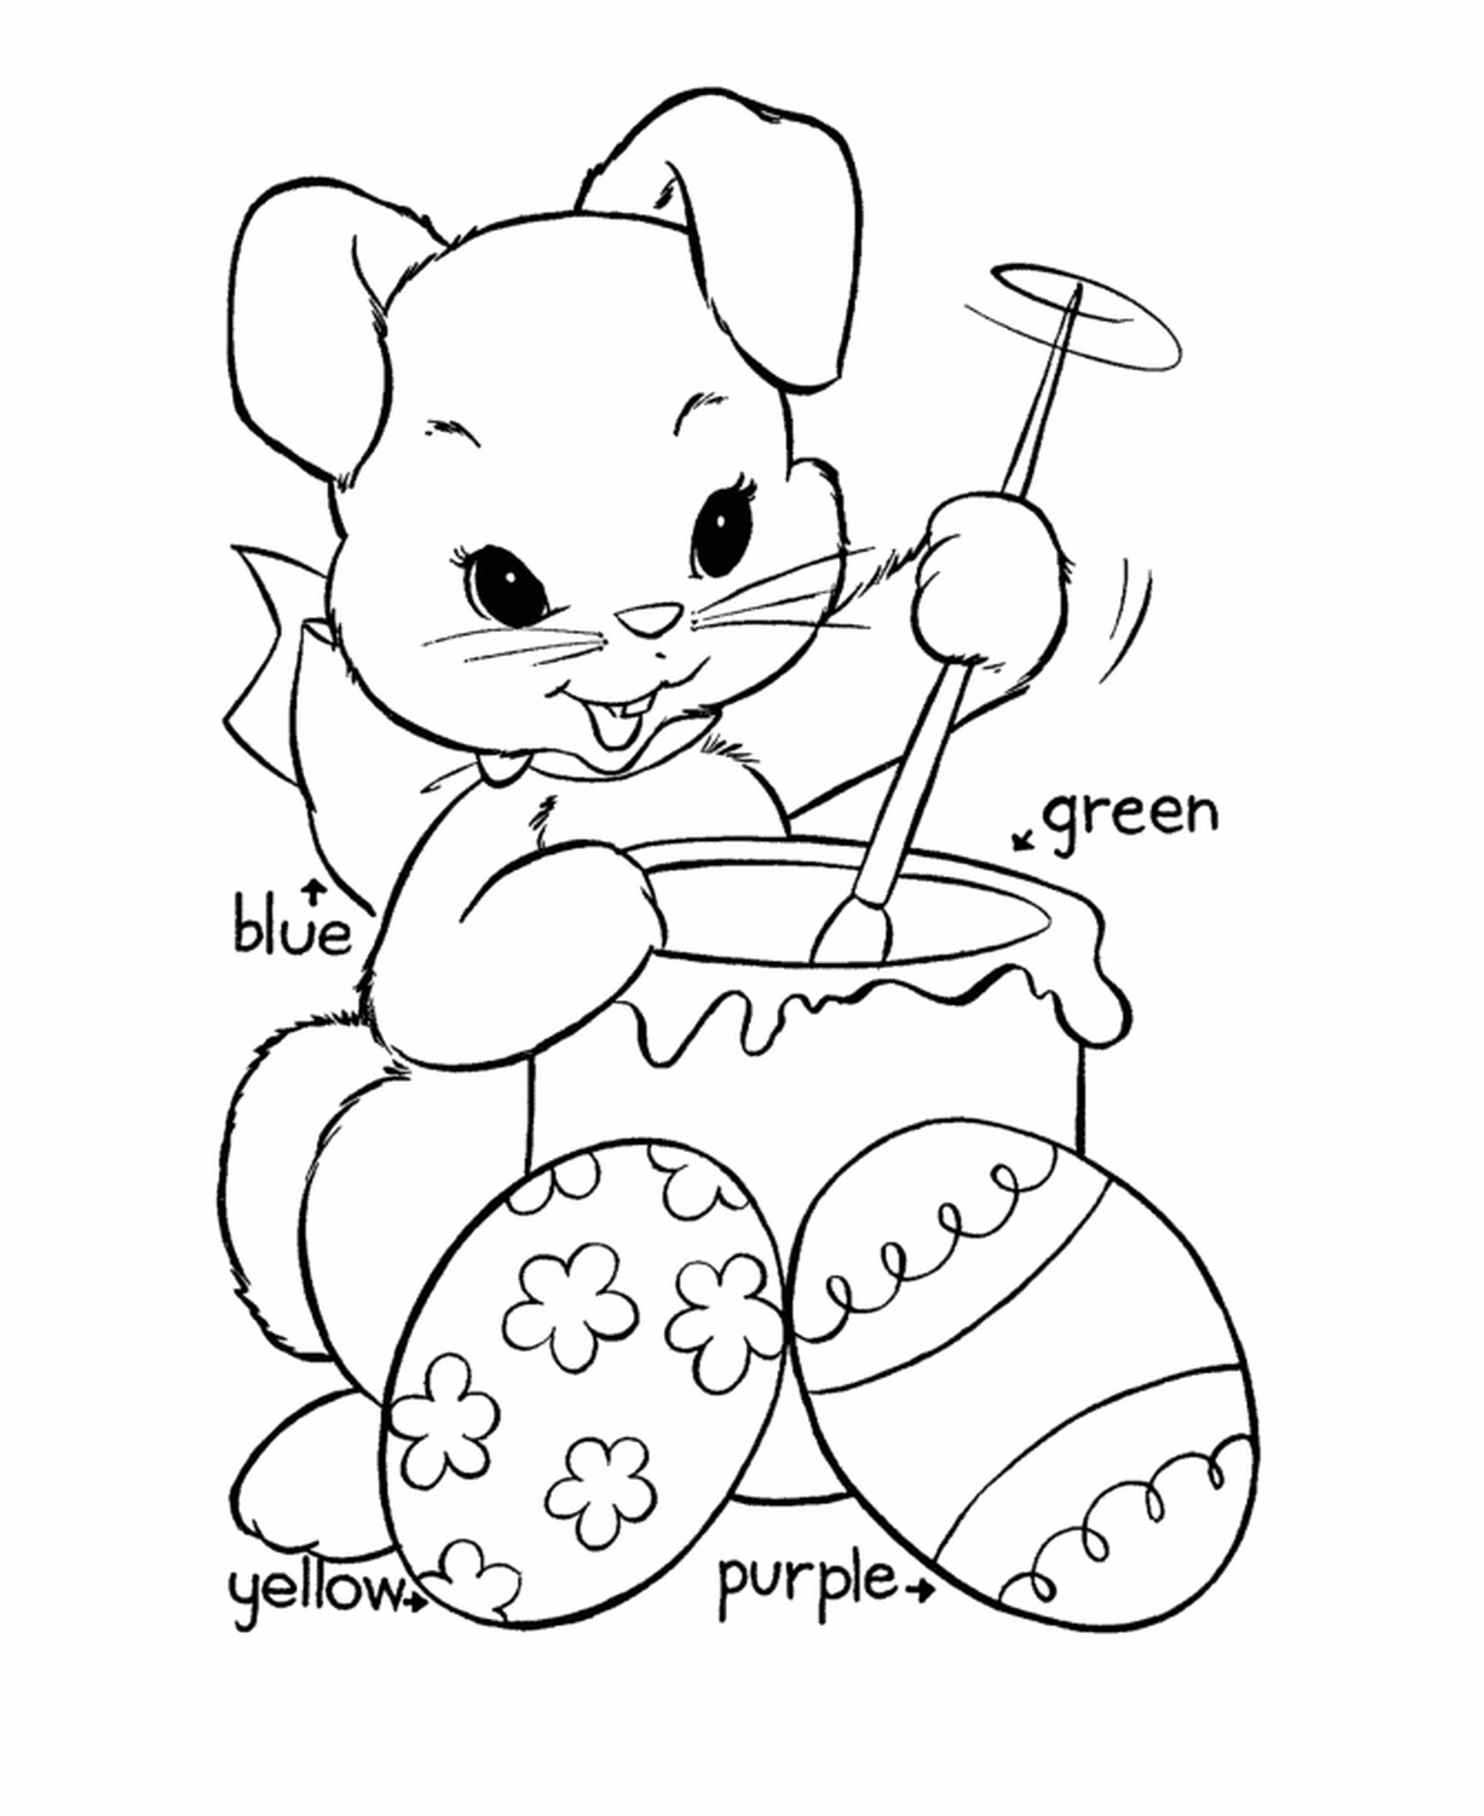 Bunny Preparing To Color Easter Eggs Coloring Sheet